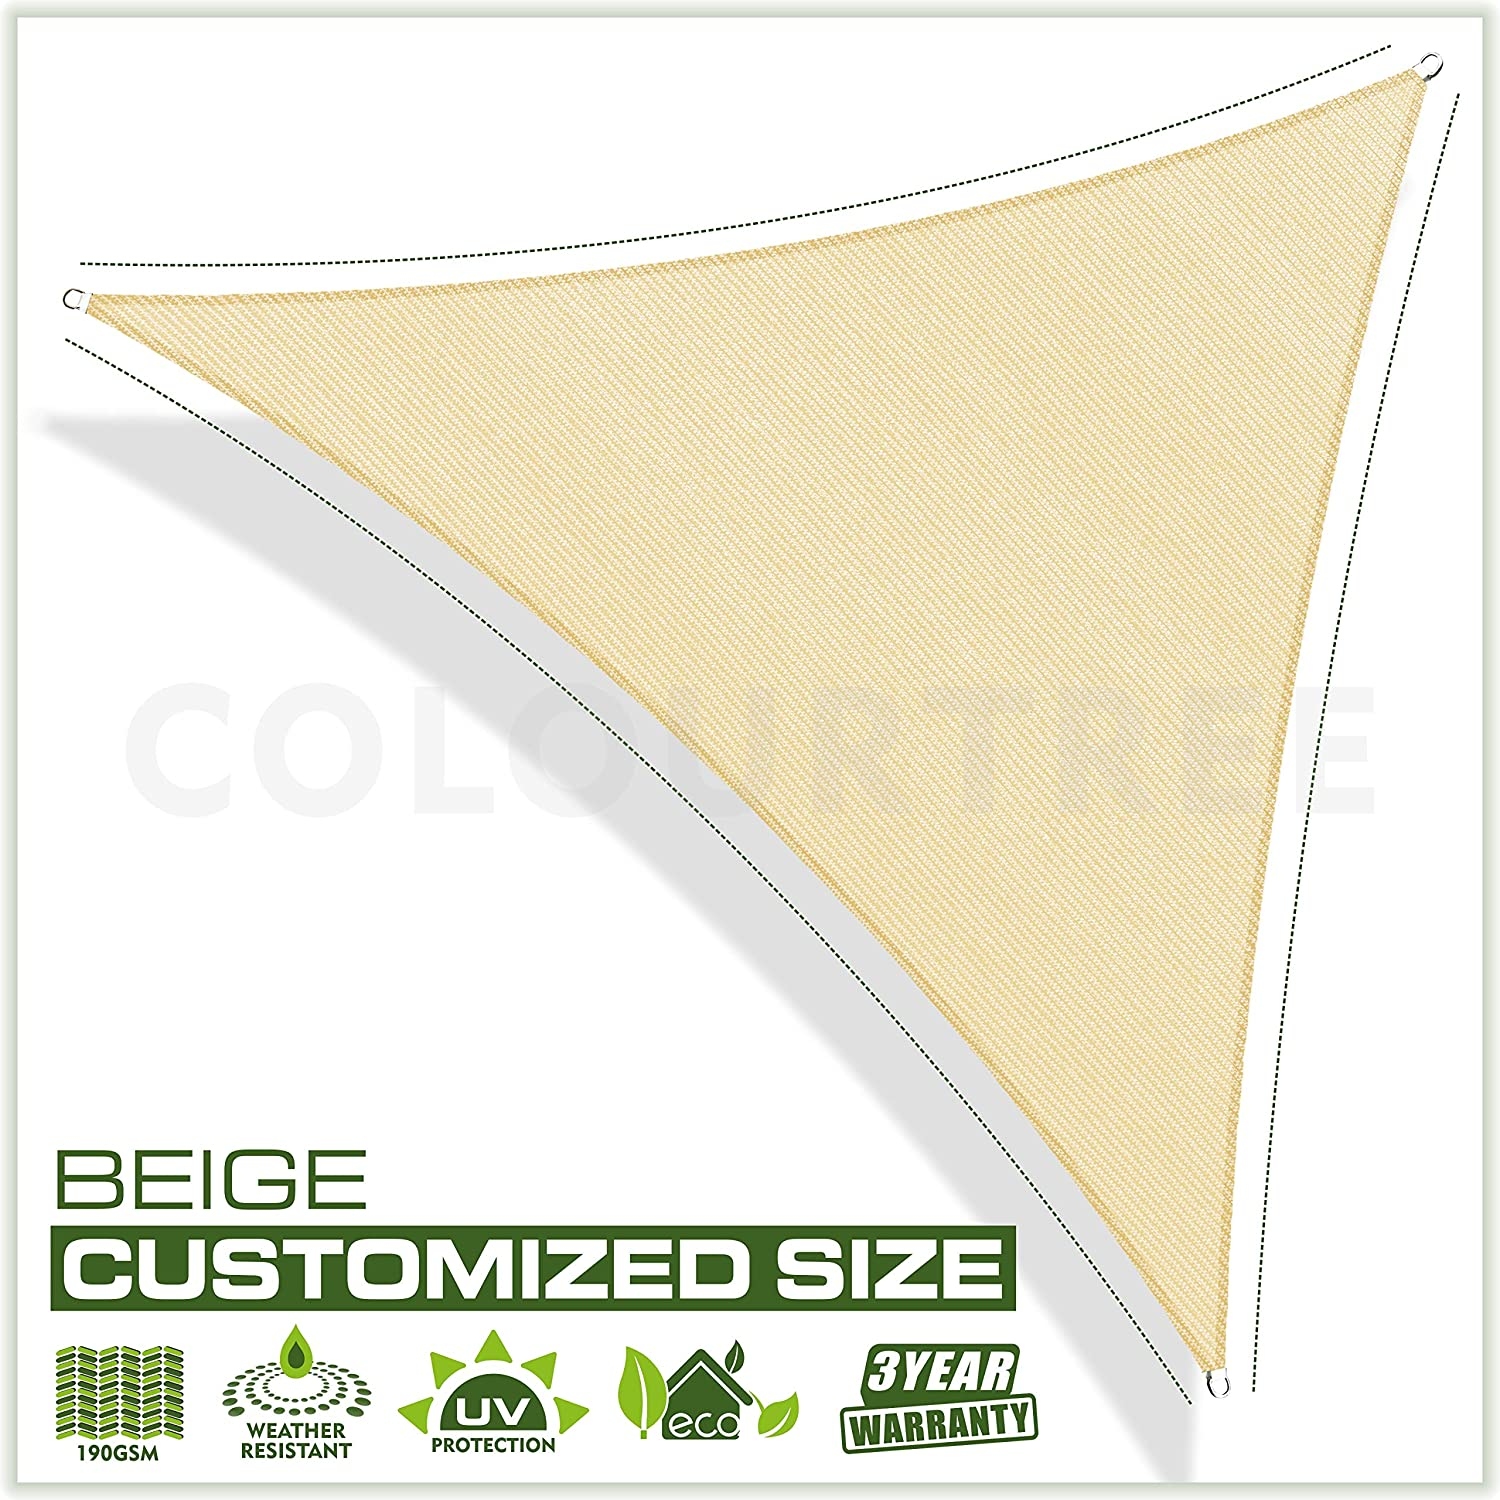 ColourTree 16 x 16 x 16 Beige Sun Shade Sail Triangle Canopy, UV Resistant Heavy Duty Commercial Grade, We Make Custom Size